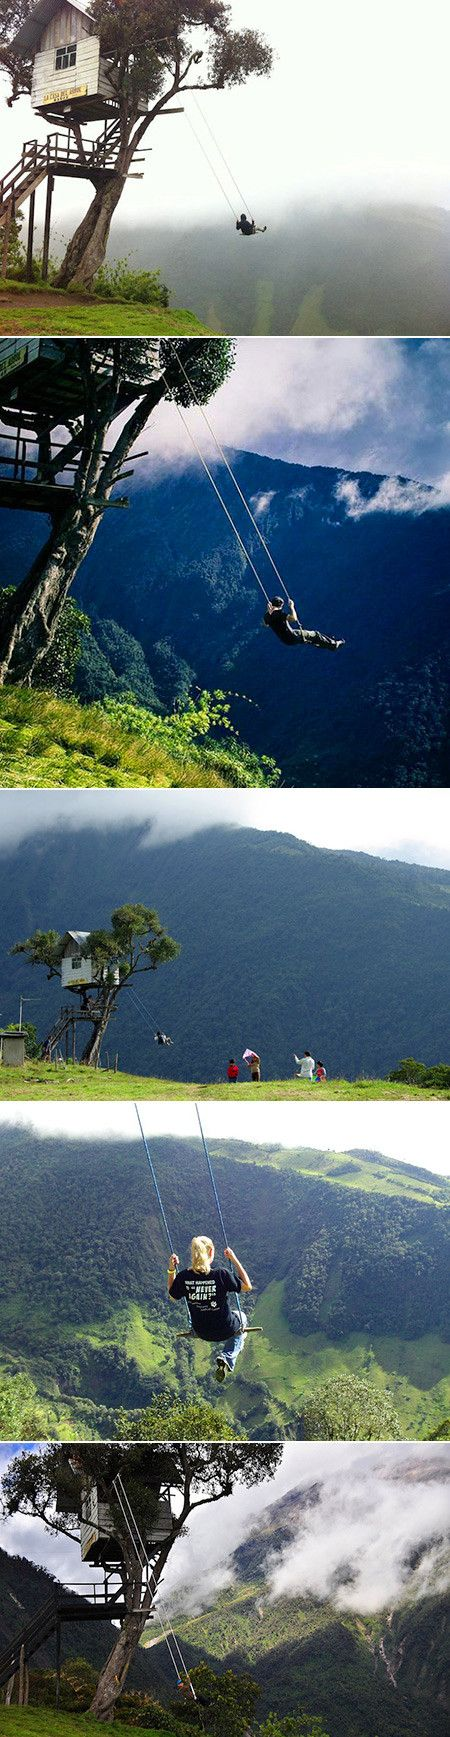 Swing sets are typically used by children on a playground, but this makeshift contraption known as the Swing at the End of the World is only for the bravest adventurers willing to take the risk of falling off the edge of a cliff while swinging high in the air. Located in Baños, Ecuador at La Casa del Árbol (The Treehouse), this incredible swing greets hikers at an elevation of 2,660 meters. It invites anyone daring enough to ride it.